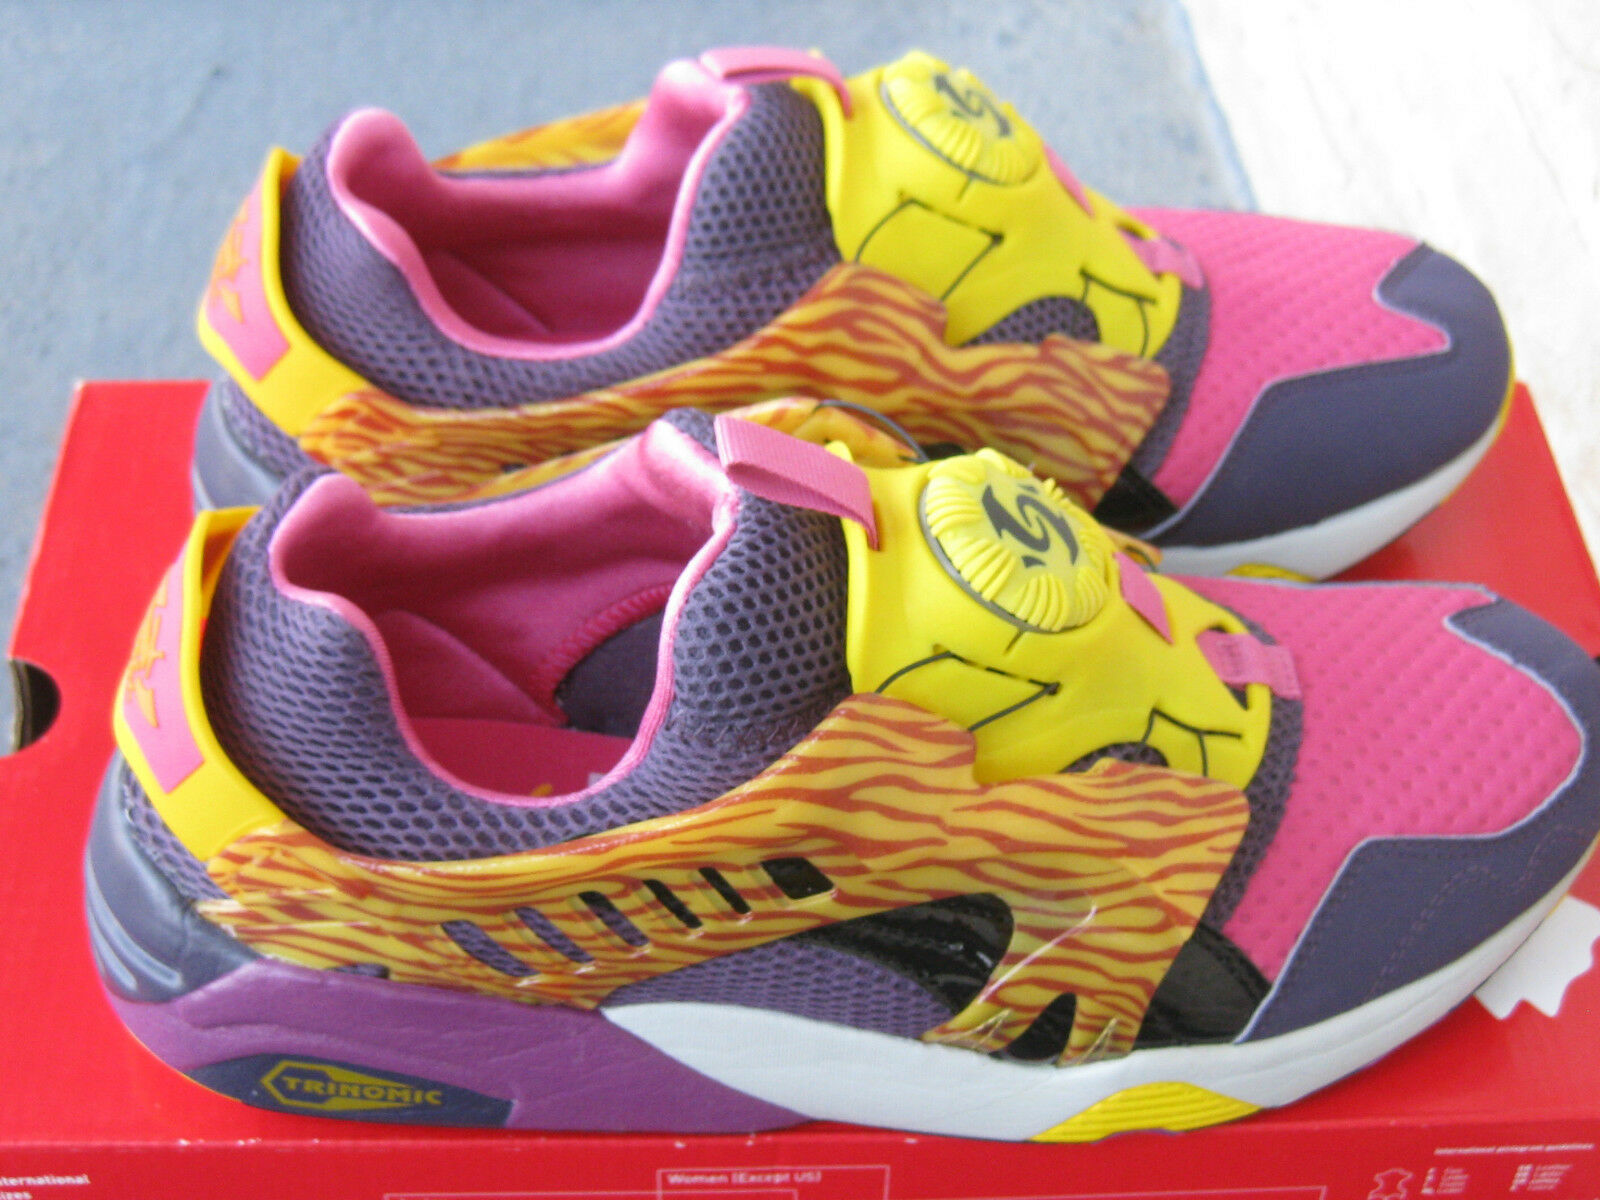 PUMA DISC BLAZE DAYS 348447 348447 348447 03 HEREN GR 44 US 10.5  UK 9.5 DEAD STOCK 2009 REL. 3f3e76